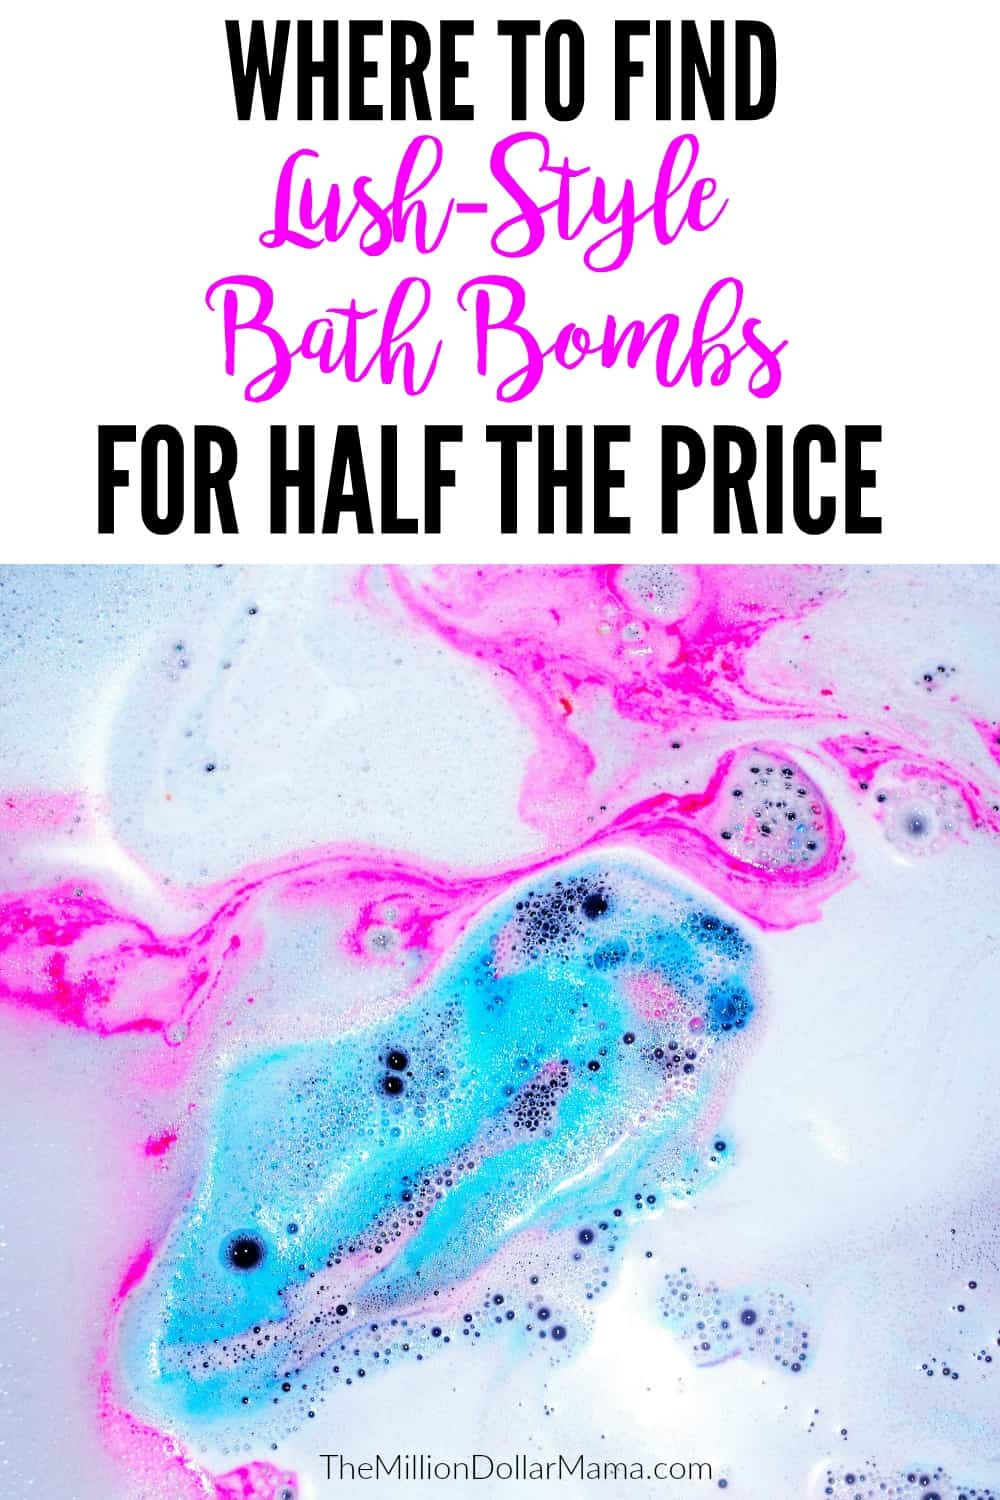 I'm a big fan of Lush bath bombs, but the price can be pretty steep. I still buy them on special occasions, but luckily, I've found a frugal alternative!